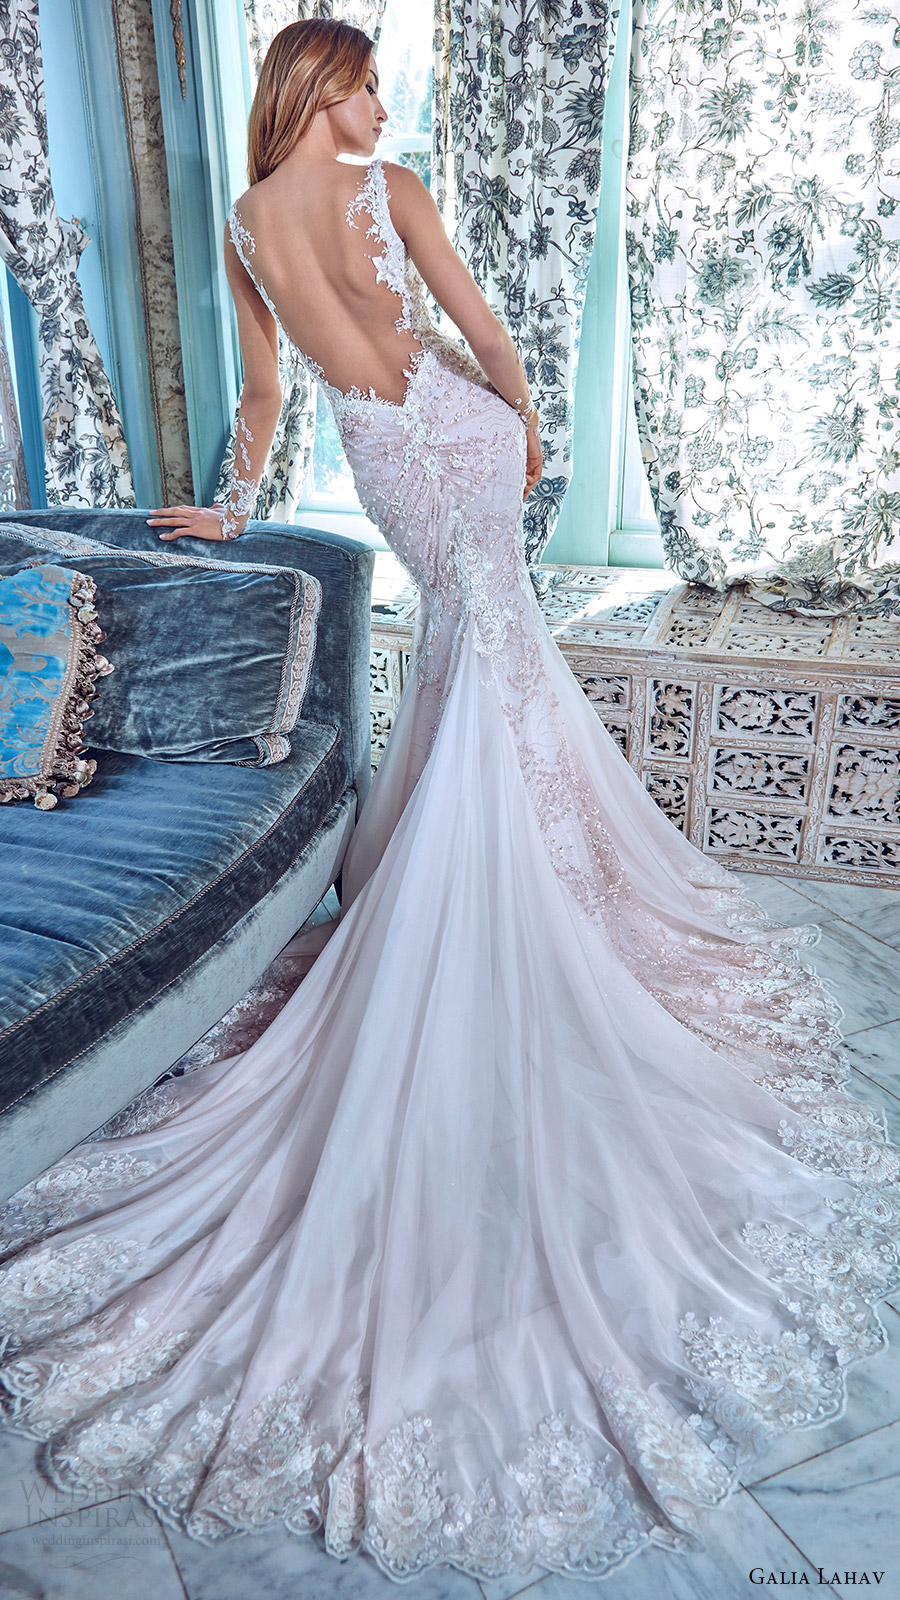 galia lahav bridal spring 2017 illusion long sleeves deep vneck mermaid wedding dress (daria) bv low back train